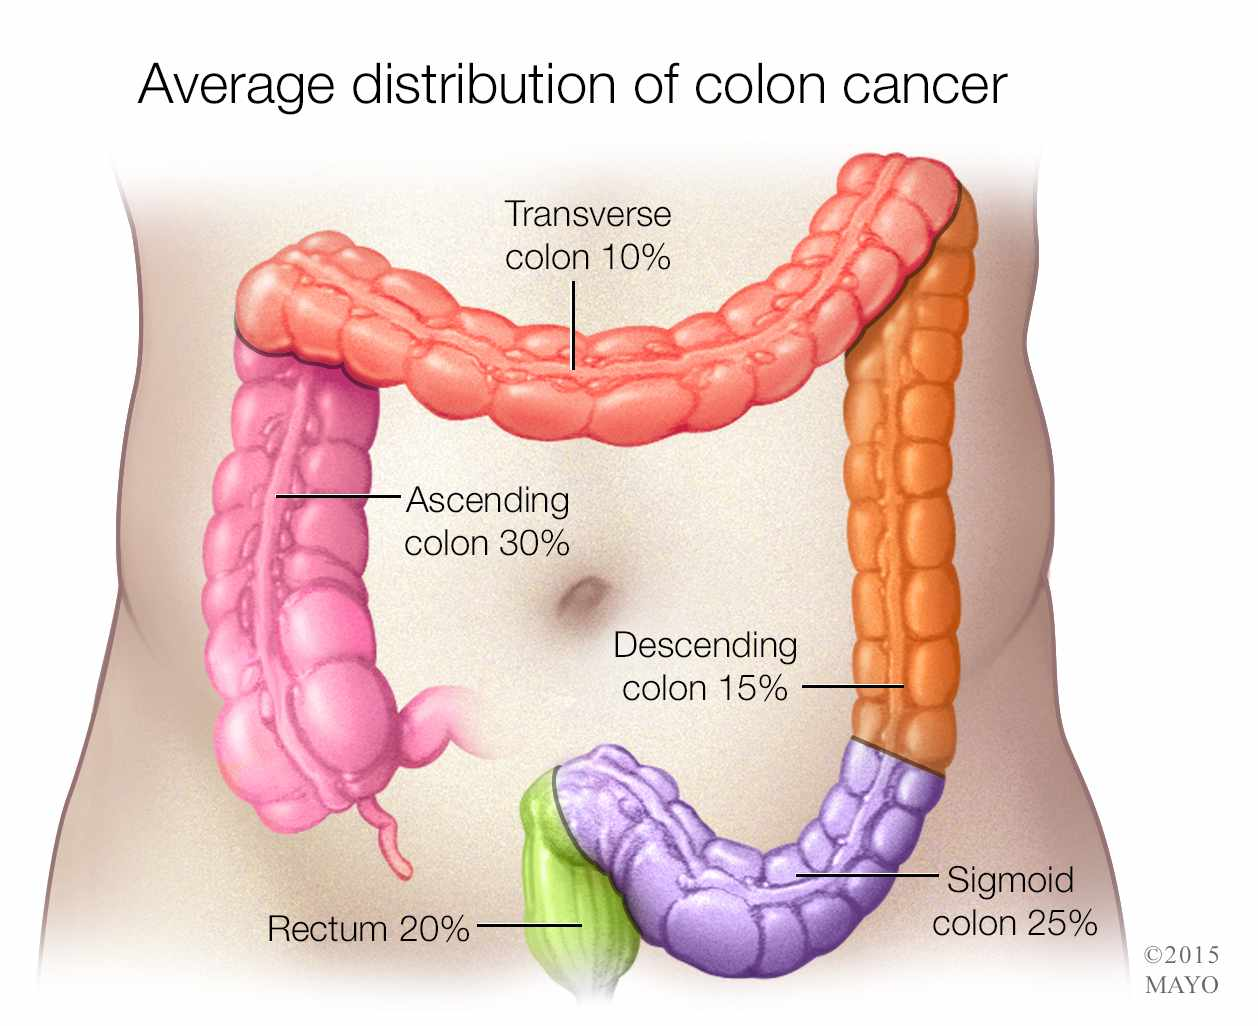 Colon Cancer Prevention Webinar Wednesday, March 25 at 12:00 p.m. CT ...